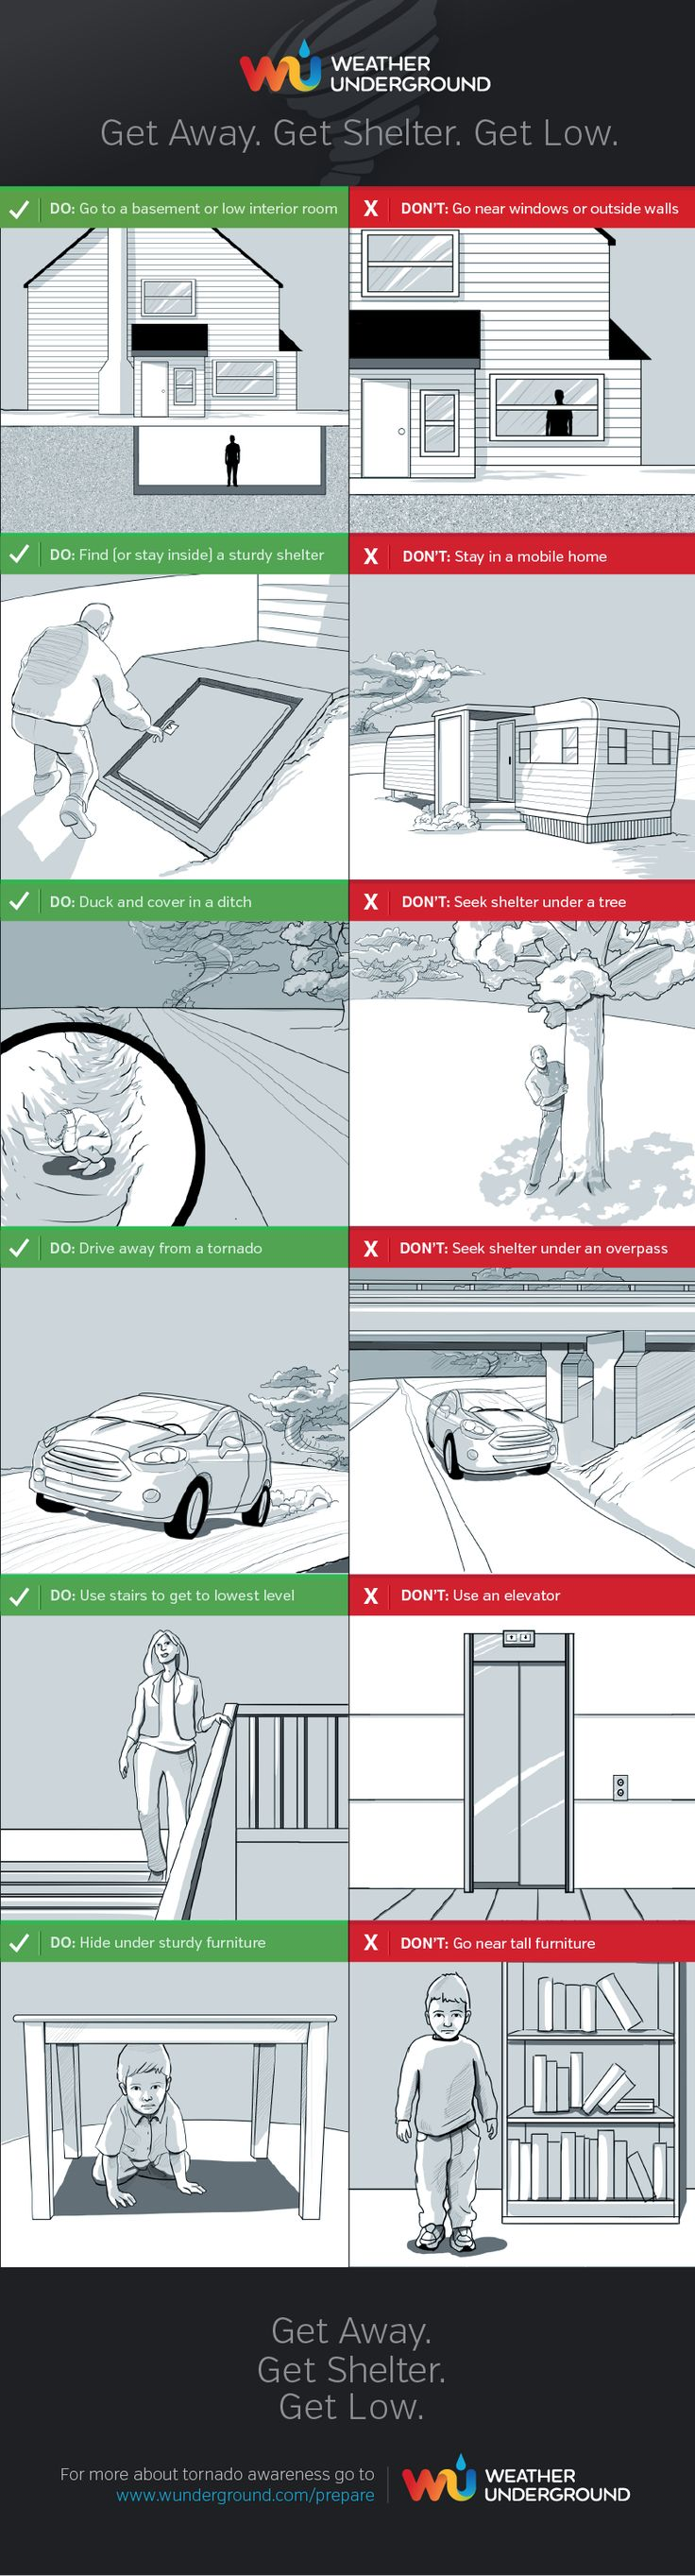 infographic: tornado safety do's and dont's